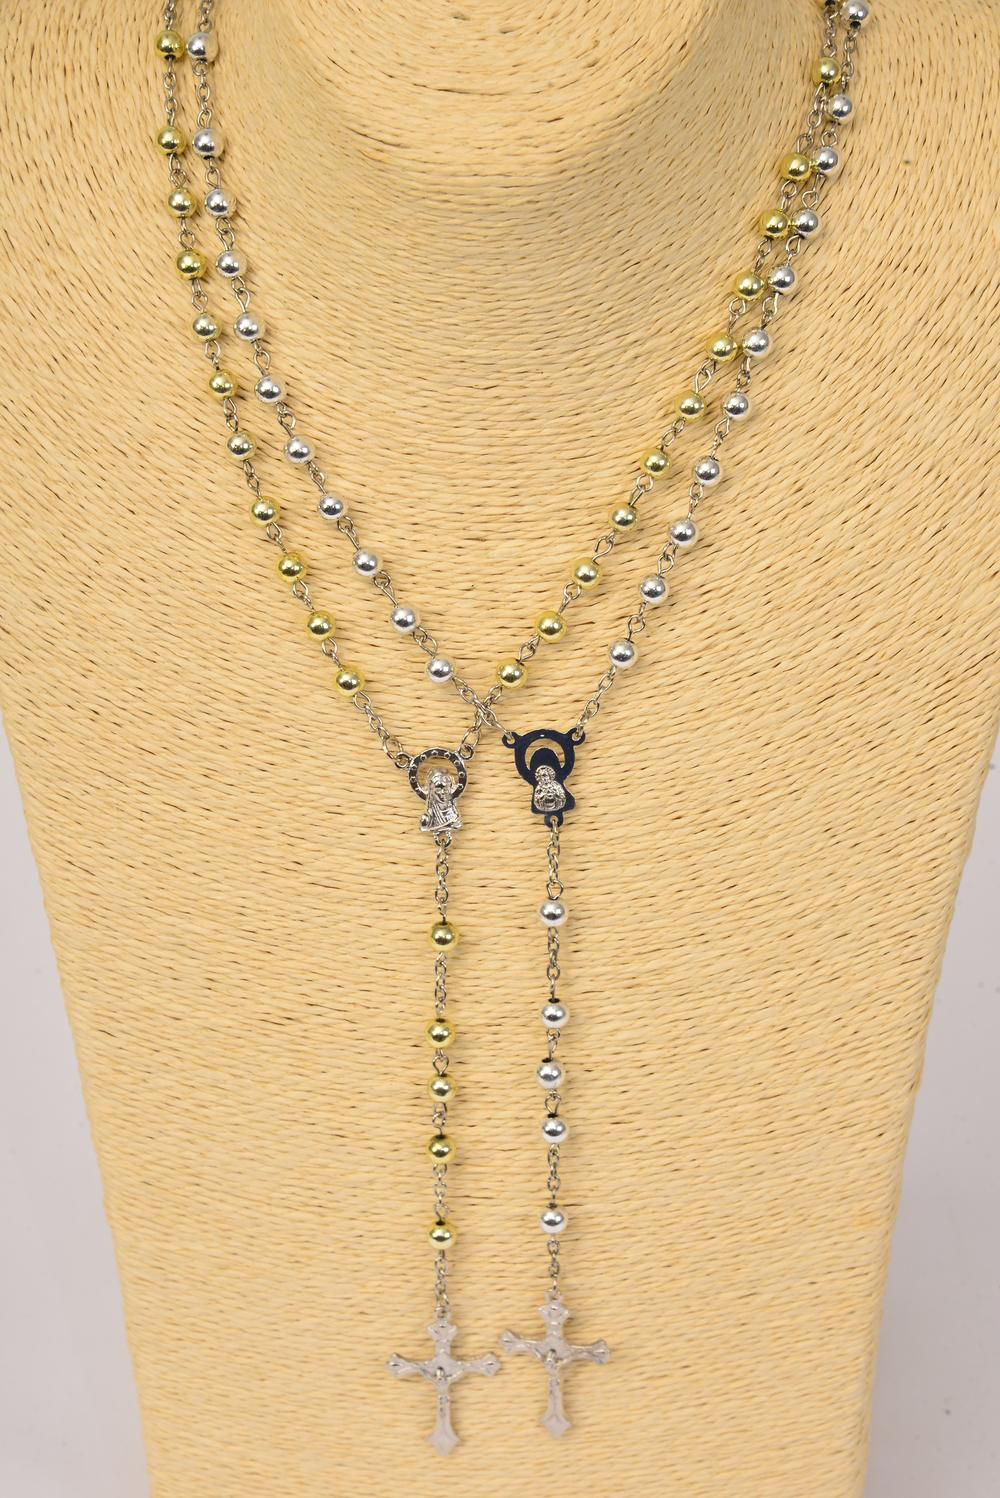 "Necklace 6 mm Prayer Beads Gold & silver Mix/DZ 32"" Long,6 Gold & 6 Silver Mix,Hang tag & Opp Bag & UPC Code"